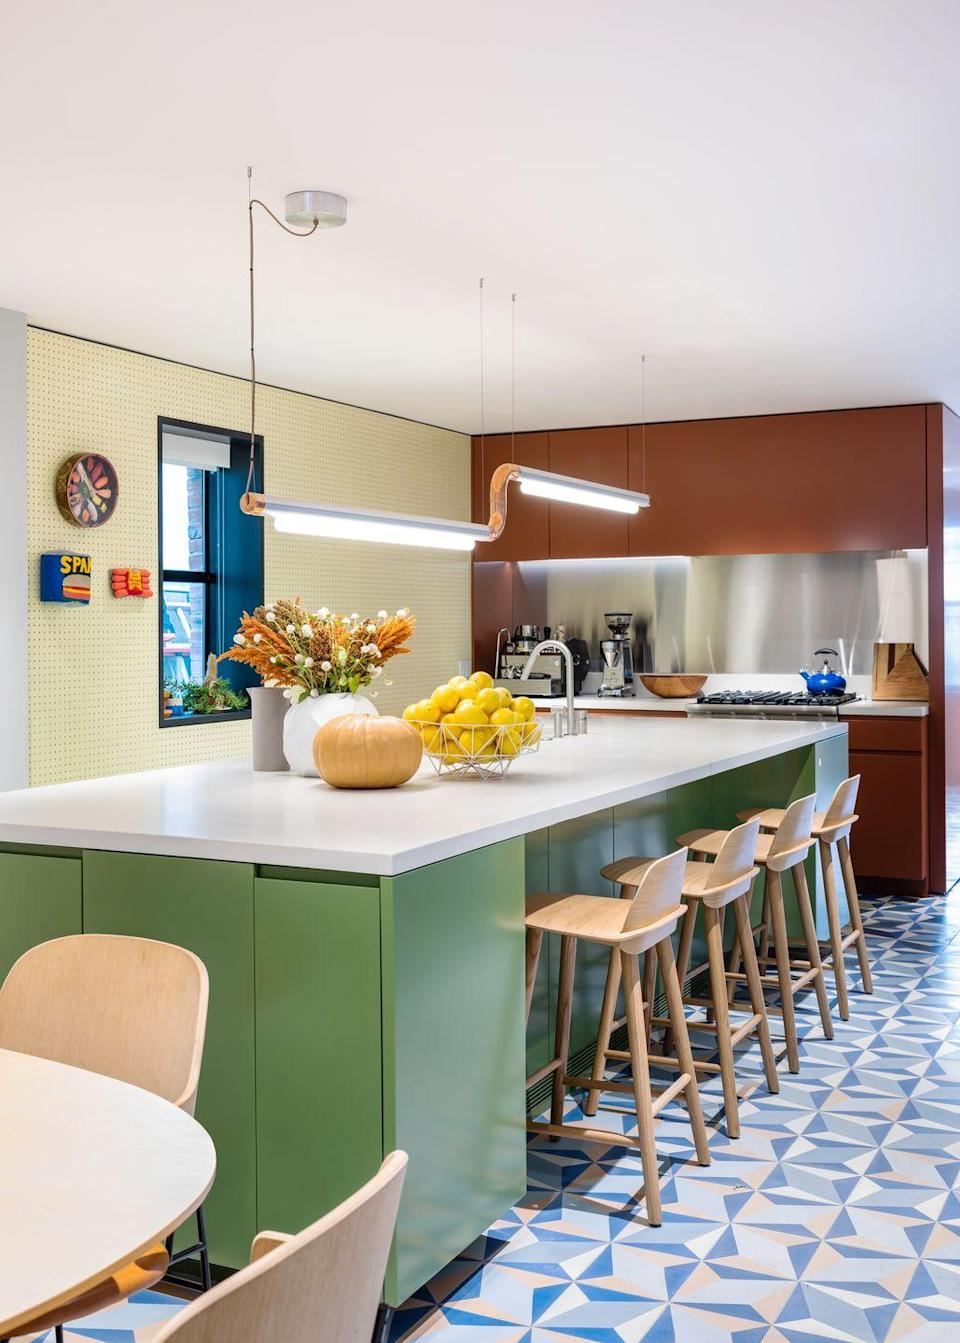 """<p>The kitchen in this <a href=""""https://elledecoration.co.uk/houses/a36926452/mkca-home-new-york/"""" rel=""""nofollow noopener"""" target=""""_blank"""" data-ylk=""""slk:Brooklyn home"""" class=""""link rapid-noclick-resp"""">Brooklyn home</a> by architecture studio MKCA uses bold tones to create practical zones – muted terracotta red marks out the practical prep area, while a vivid green on the island makes for an inviting sociable space. Meanwhile, a colourful floor with tiles from Cement Tile Shop maintains a sense of connection and flow. <a href=""""https://www.cementtileshop.com/SFNT.html"""" rel=""""nofollow noopener"""" target=""""_blank"""" data-ylk=""""slk:cementtileshop.com"""" class=""""link rapid-noclick-resp"""">cementtileshop.com</a></p>"""